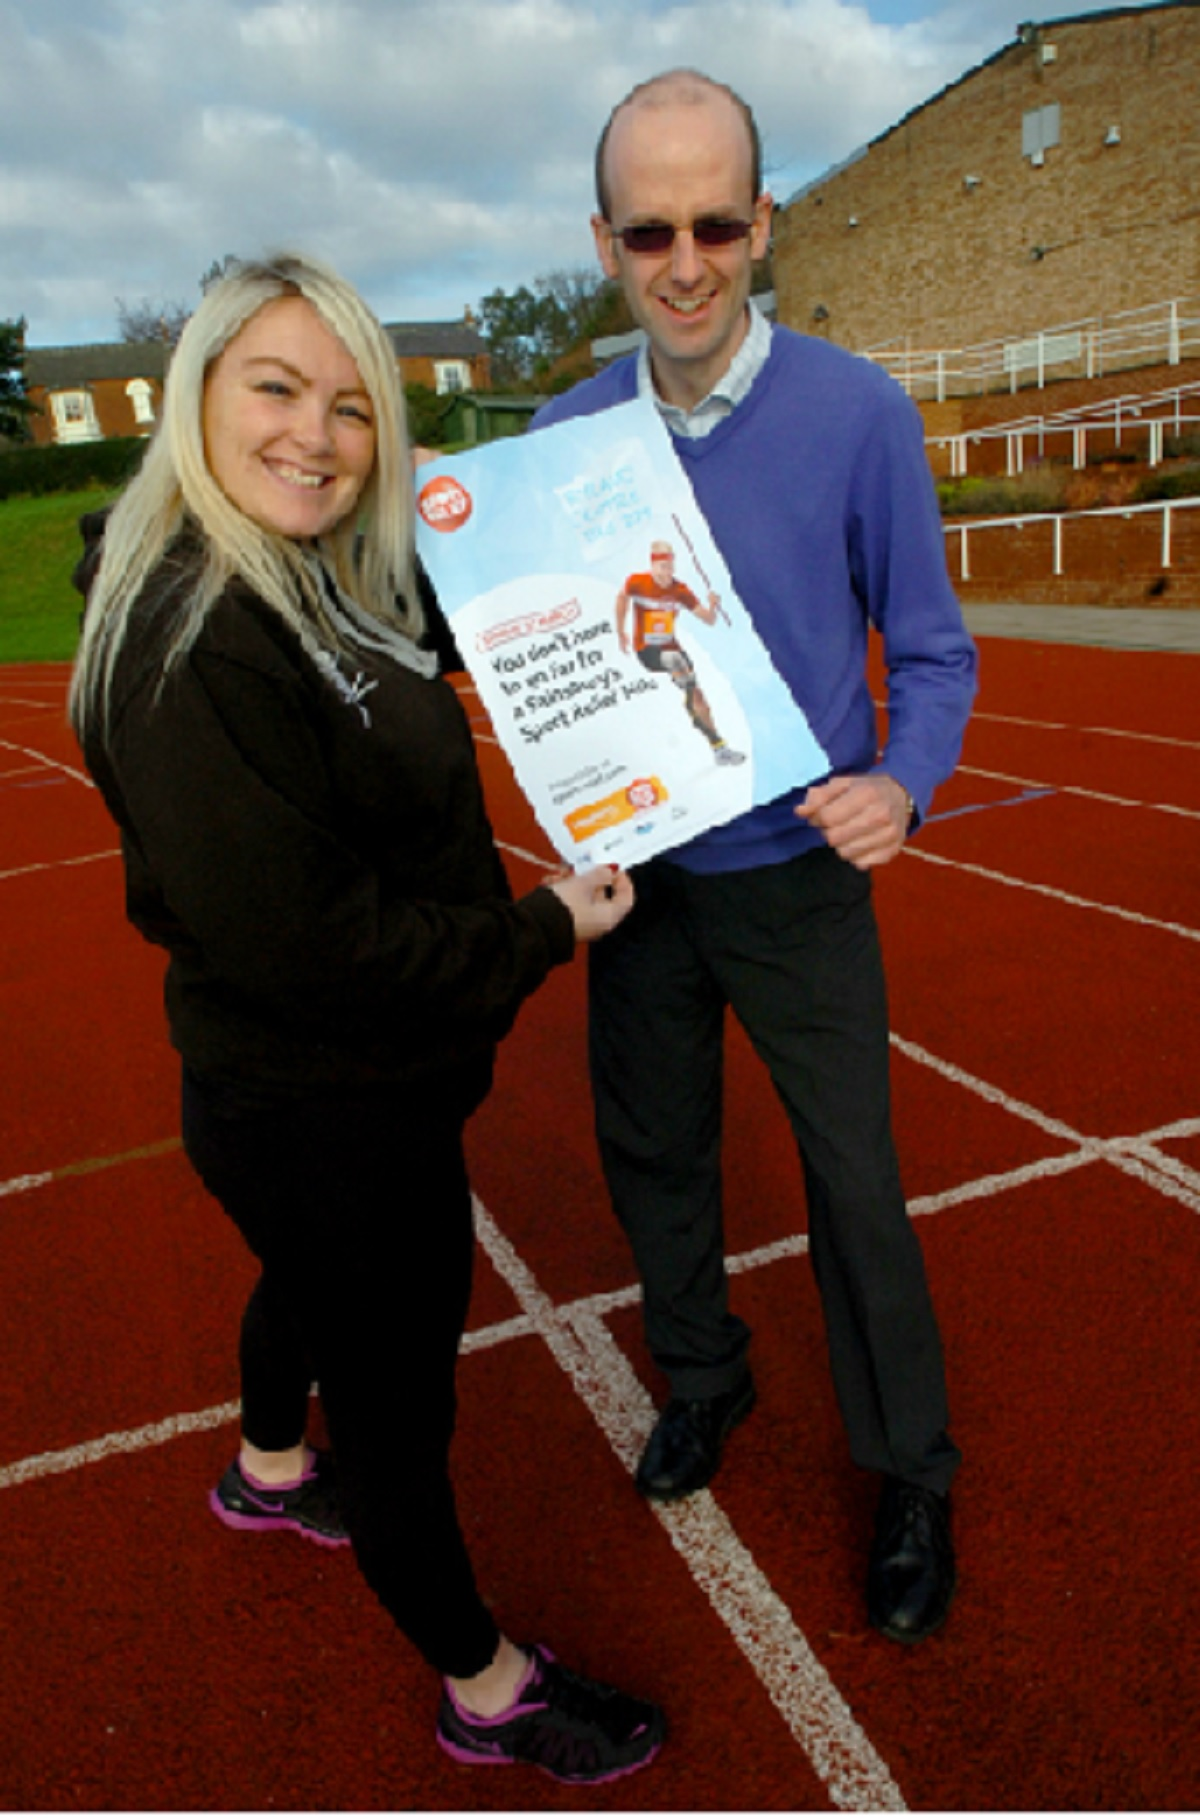 Bromsgrove's Ryland Centre is hosting a Sport Relief mile in March. Michelle Jones, the centre's general manager, with Matt Hill, activities development officer.   Buy this photo BM